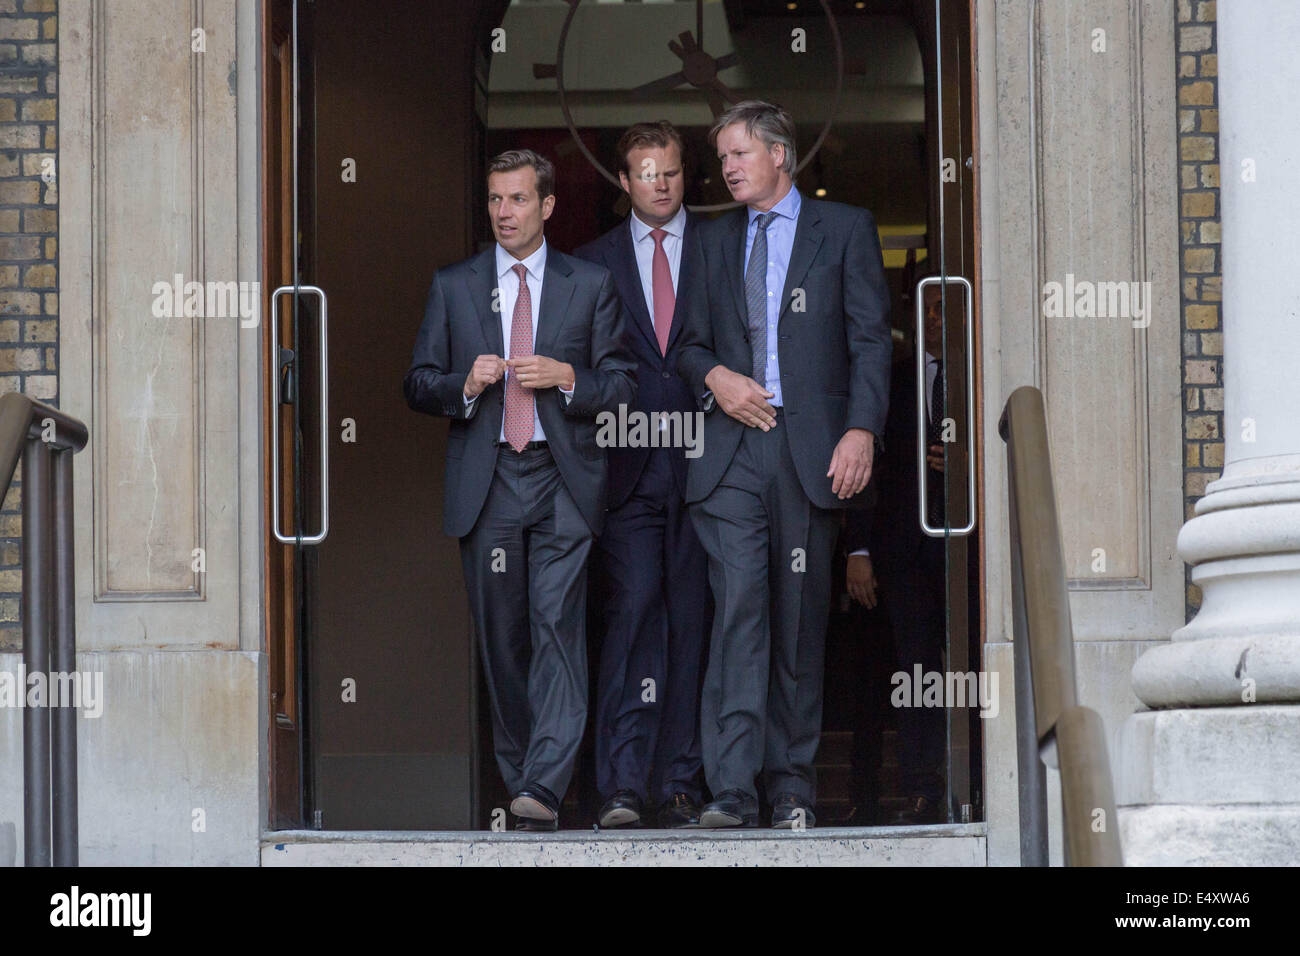 Guests arrive for the opening of newly restored Imperial War Museum in London, UK. - Stock Image